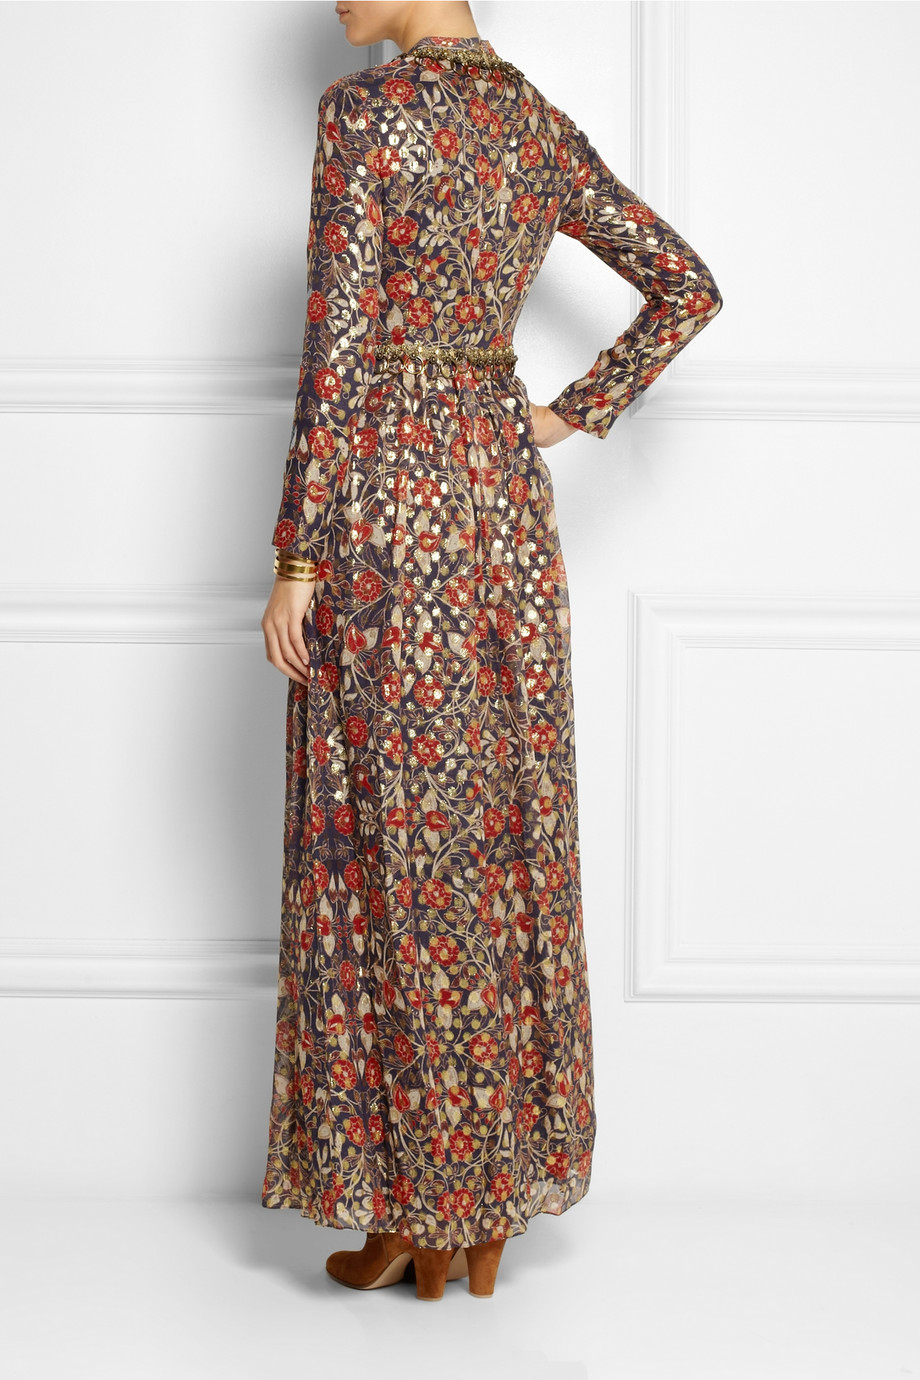 Tory burch Leane Embellished Metallic Silk-Blend Maxi Dress in Red ...